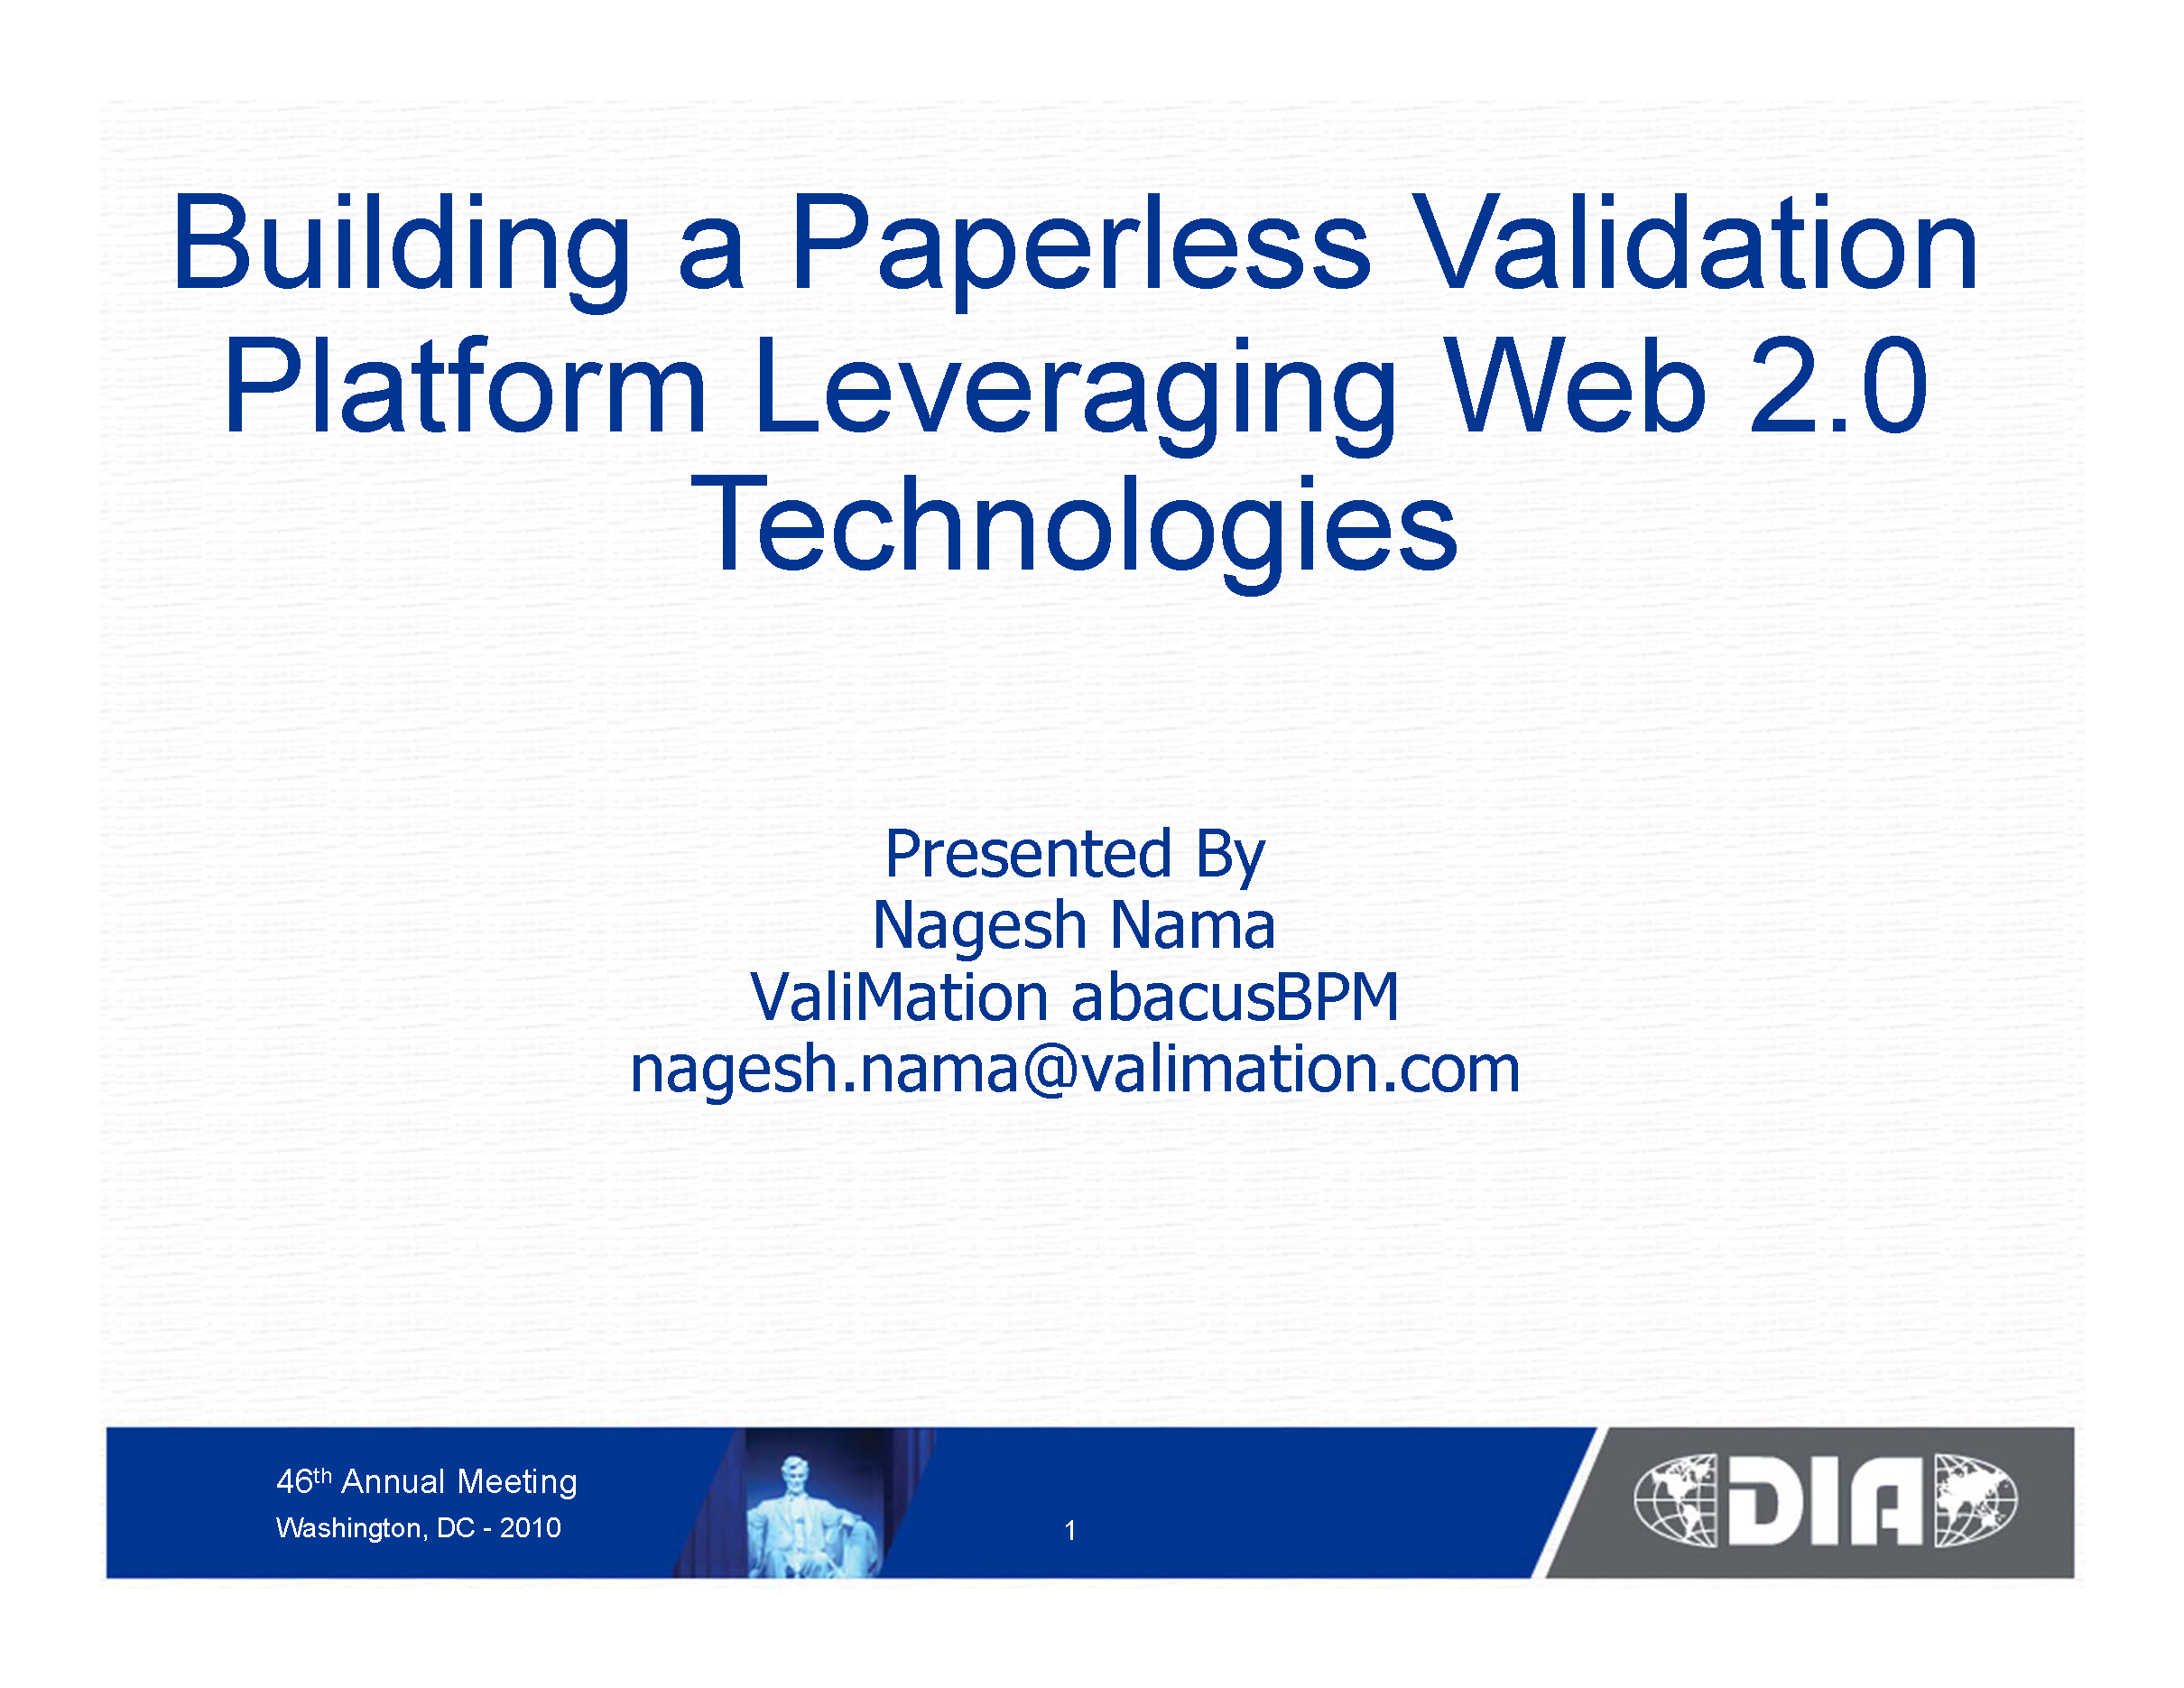 ValiMation-Building_a_Paperless_Validation_Platform_Leveraging_Web_2-0_Technologies_Page_01.png